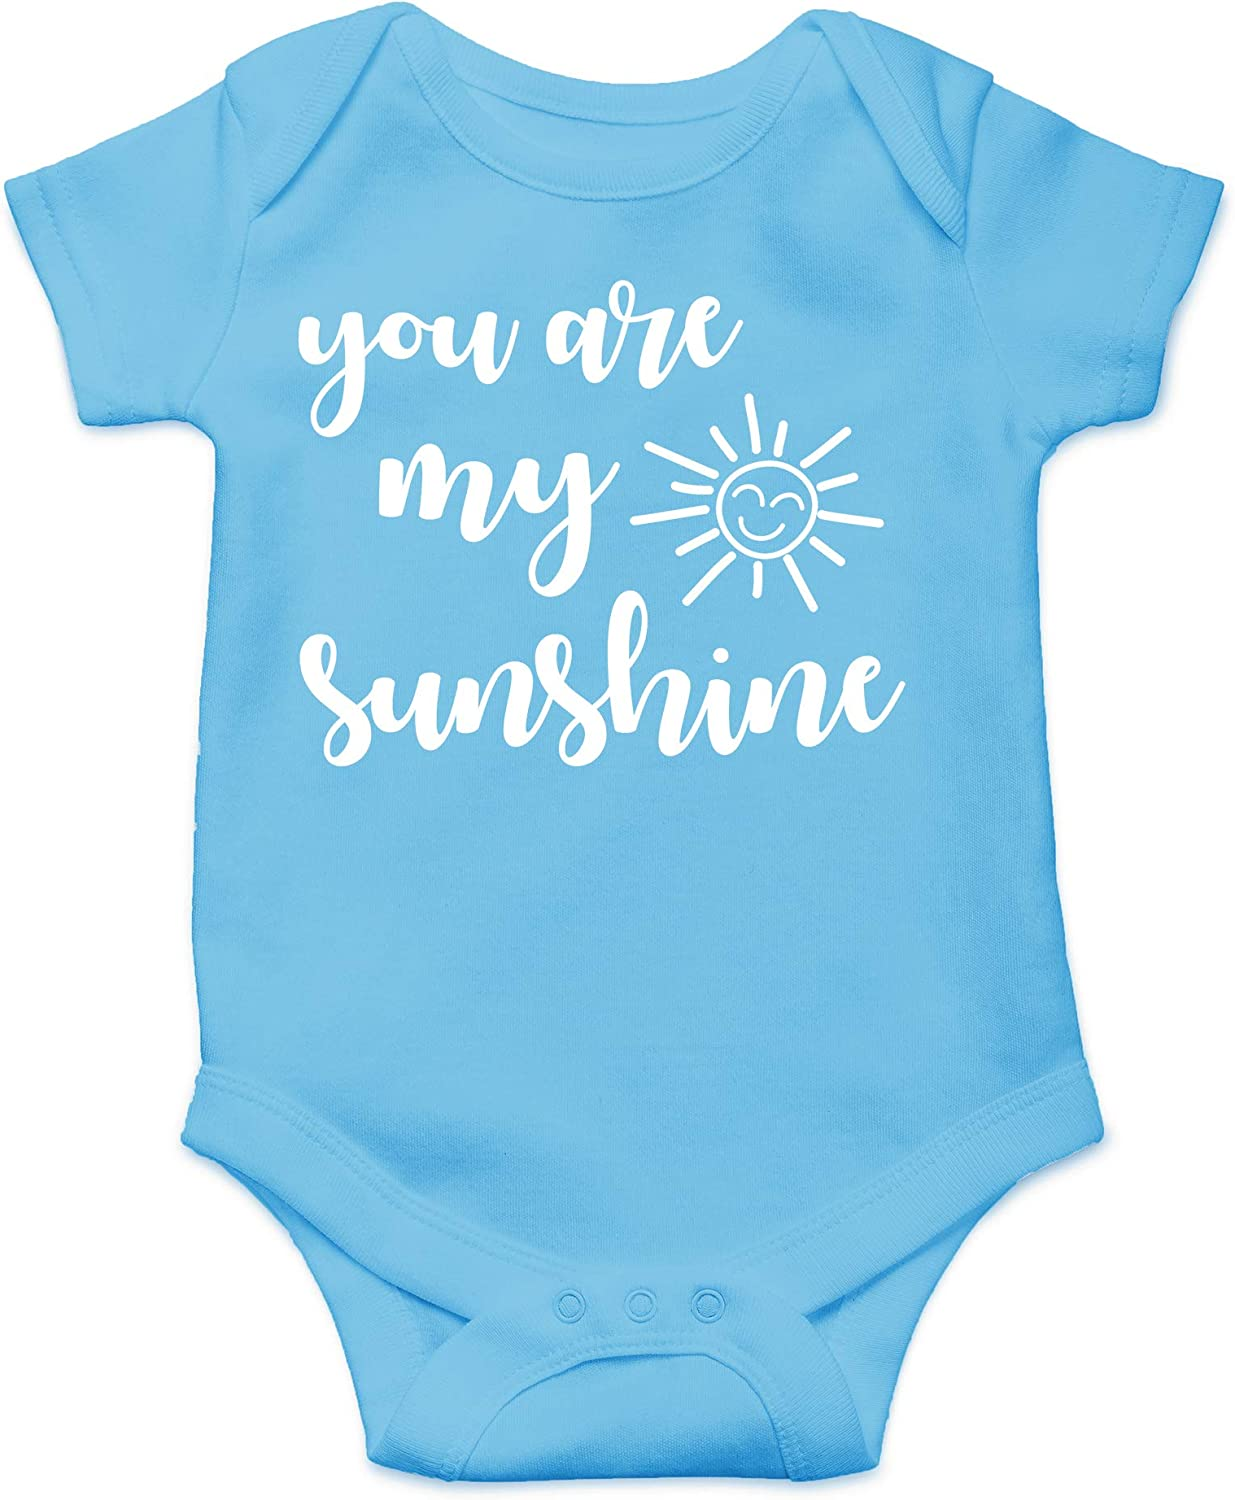 You are My Sunshine - Funny Novelty Newborn Girl or Boy Outfit - Cute Infant One-Piece Baby Bodysuit